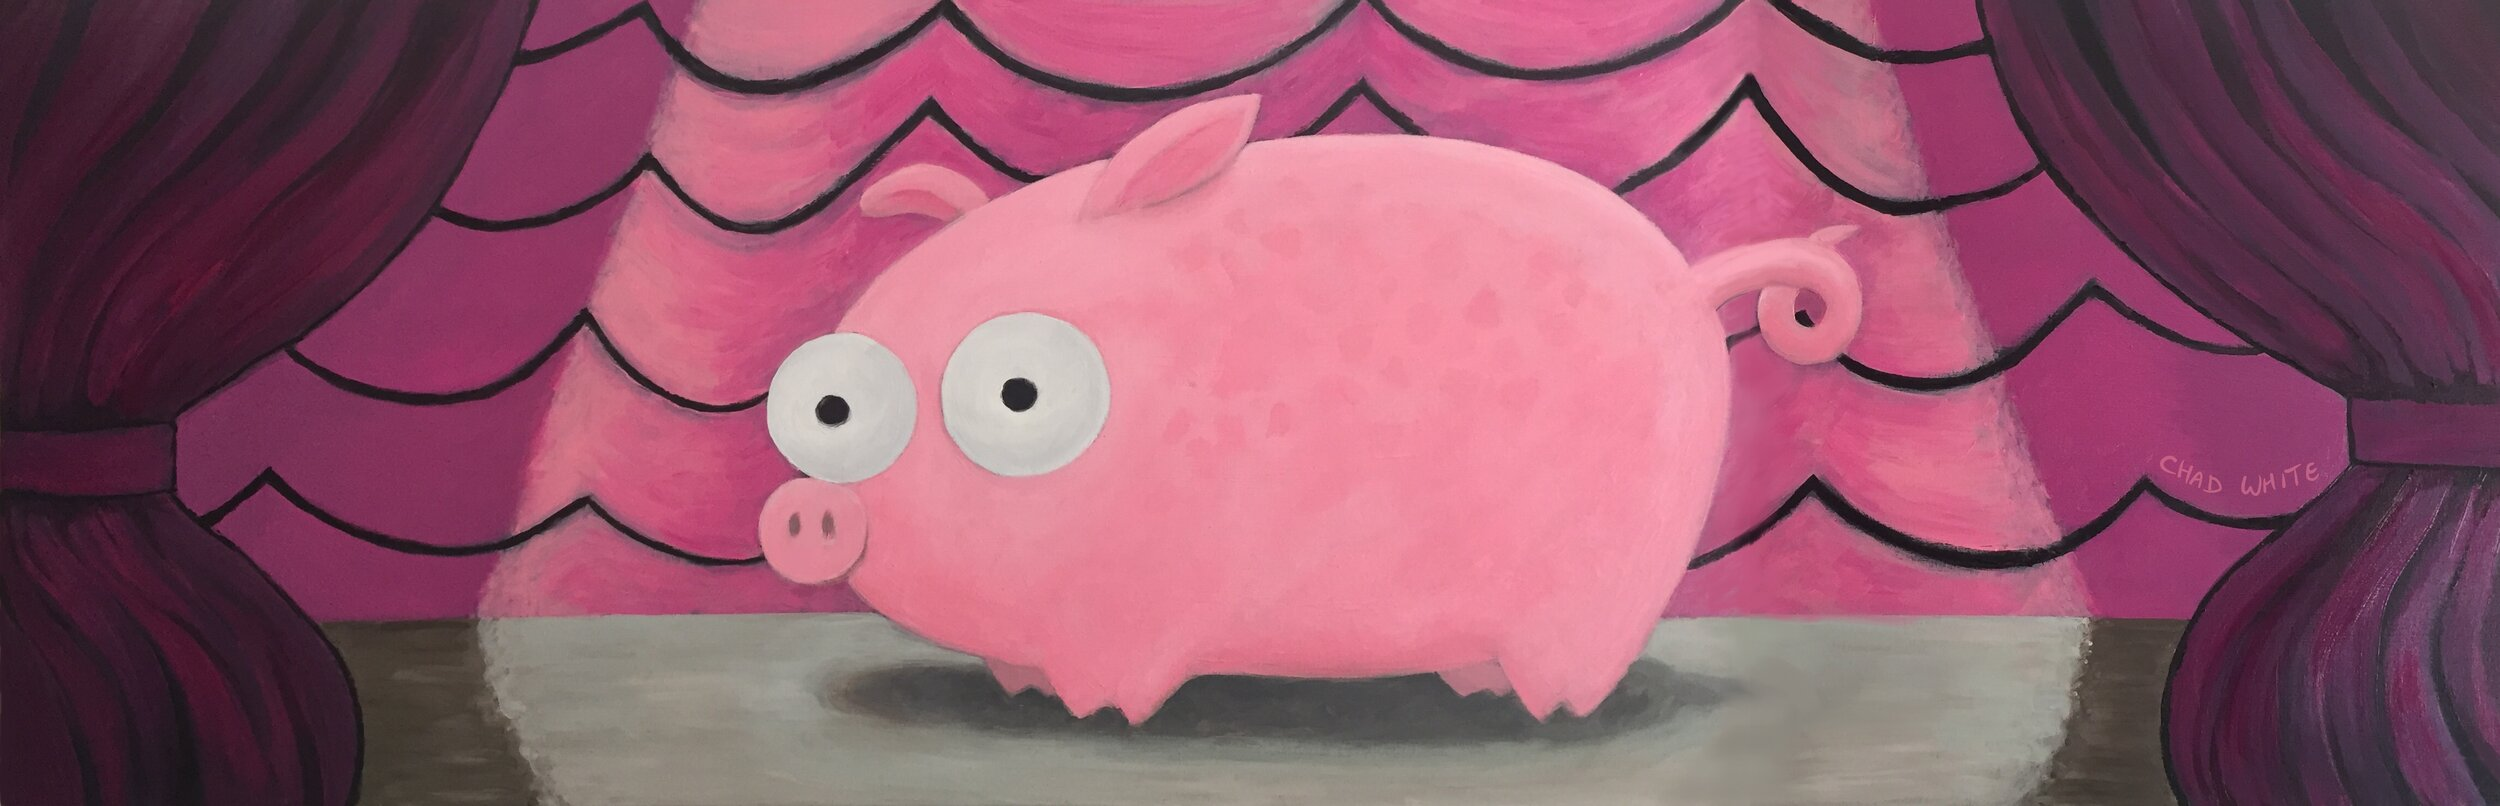 Pig and Curtains